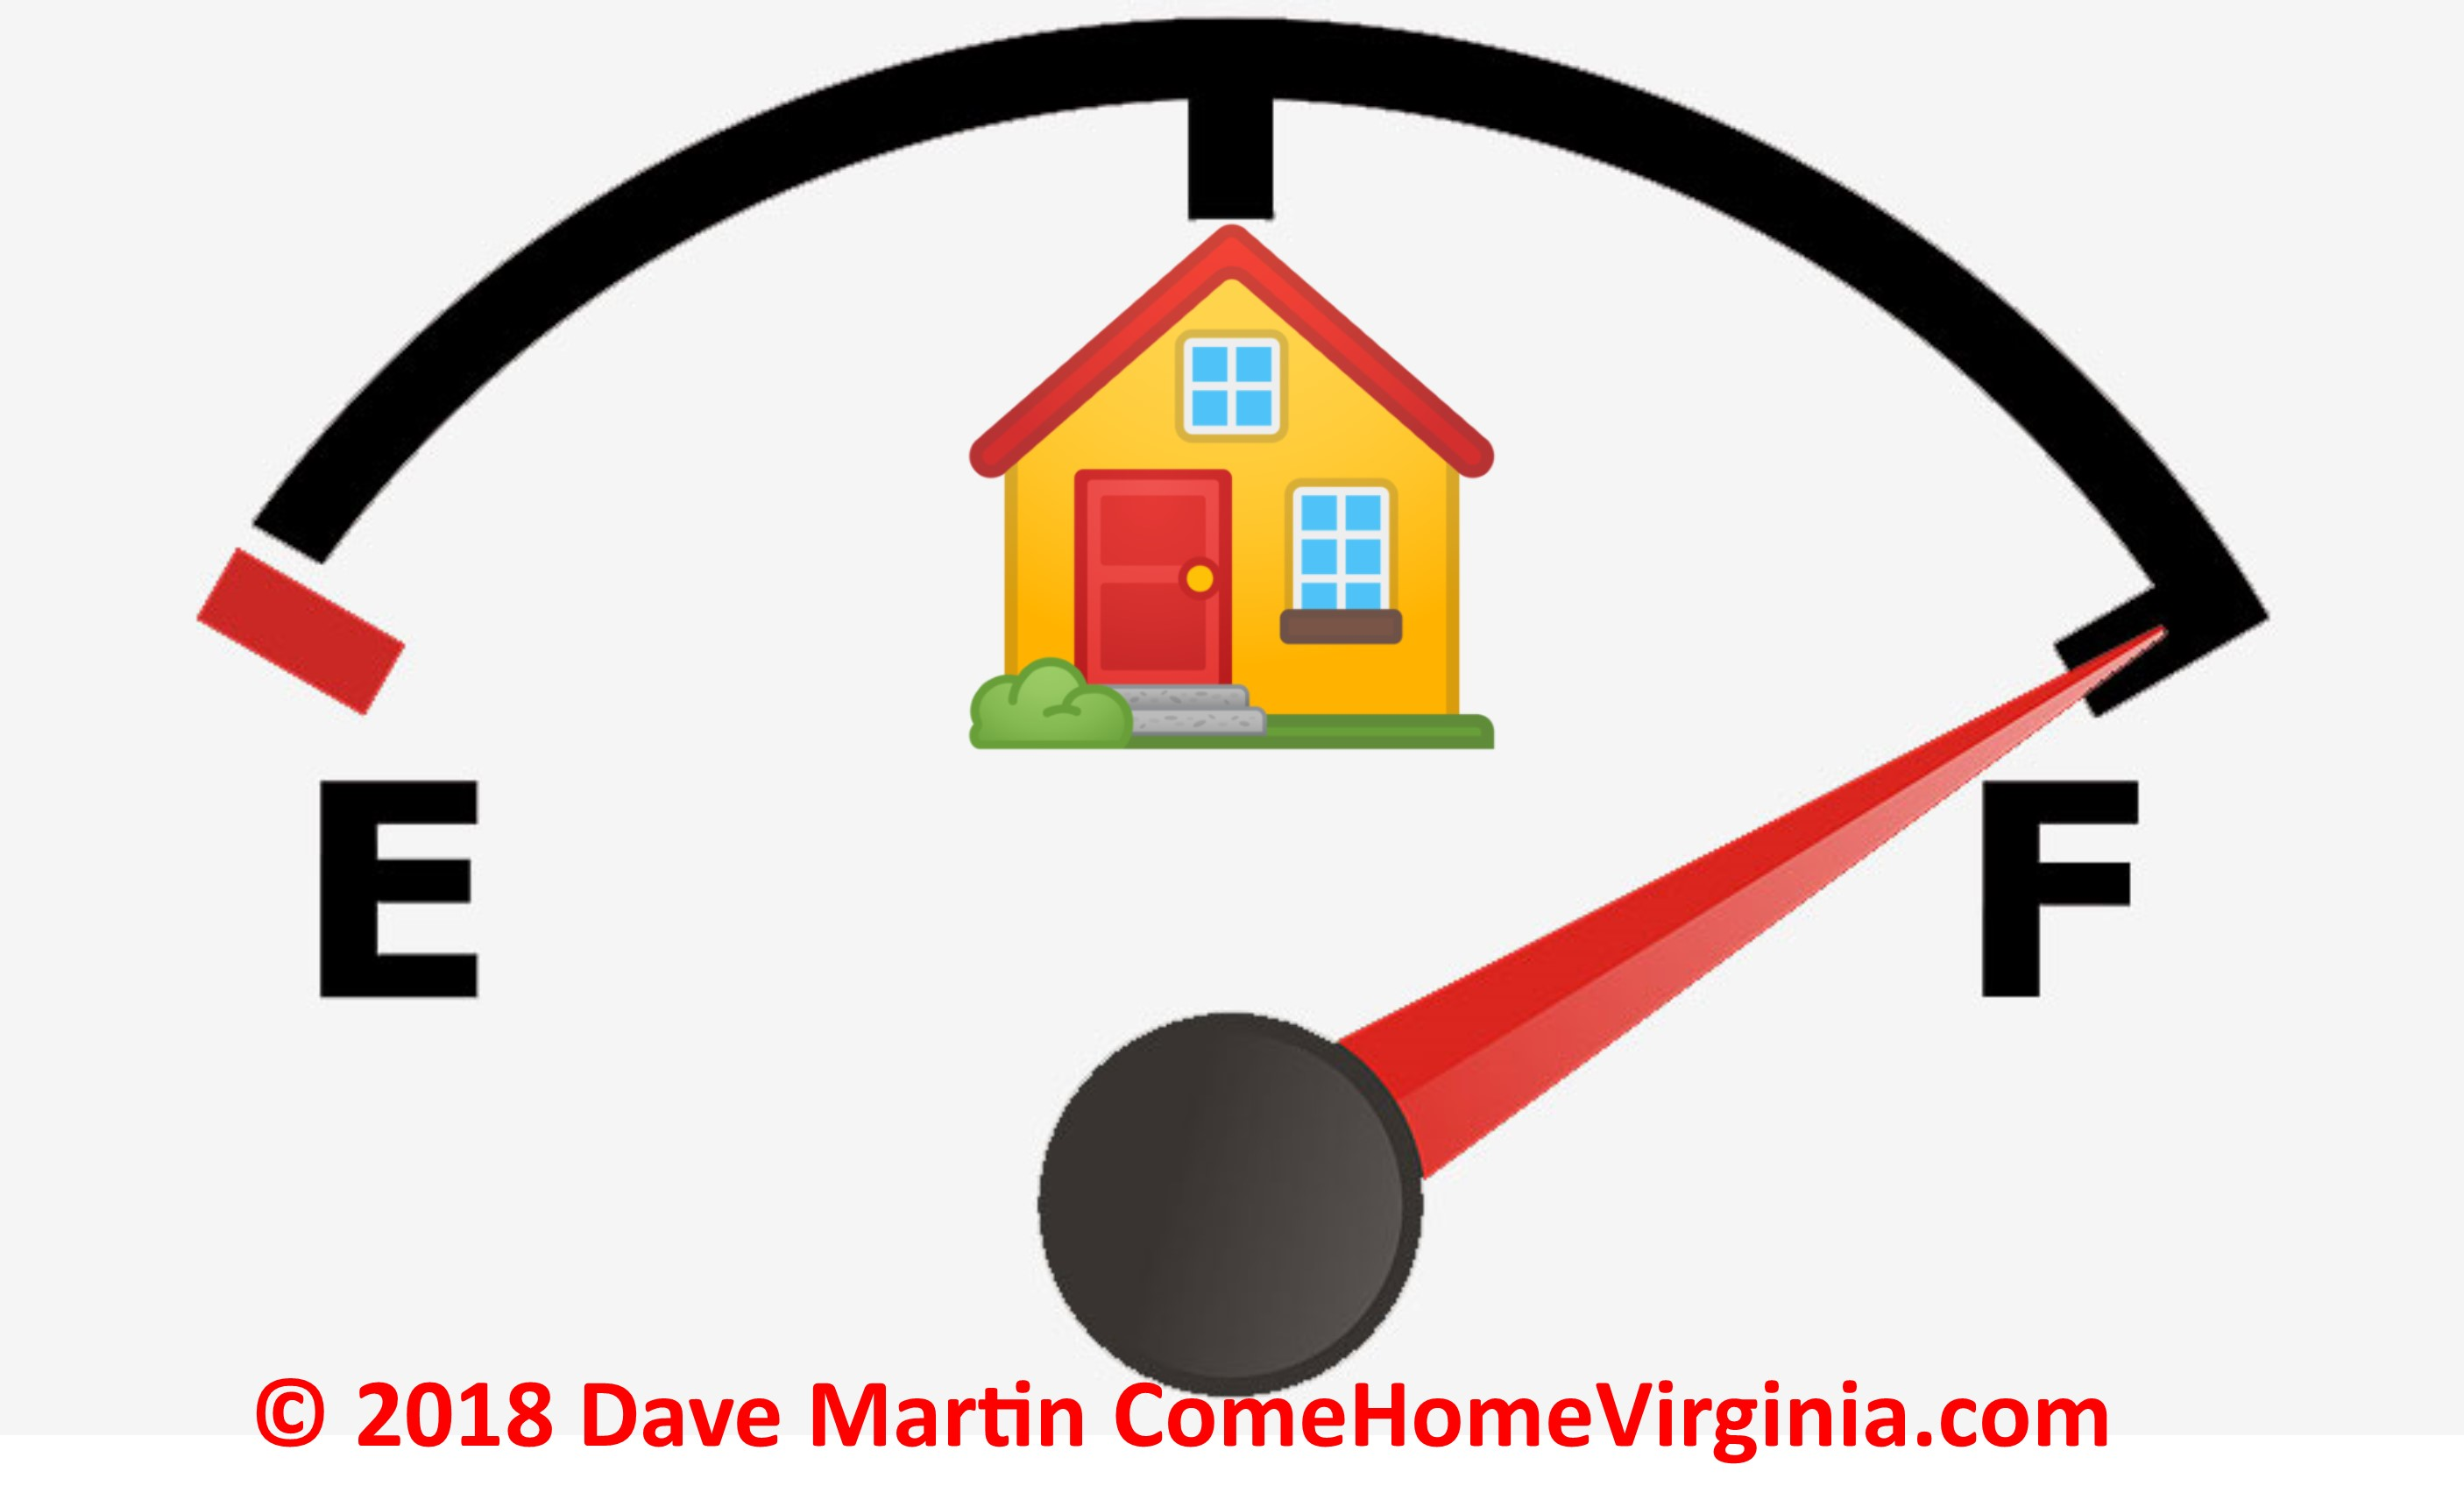 Sellers home Buyers want these features most when buying a house Northern Virginia Dave Martin realtor Selling a house expert